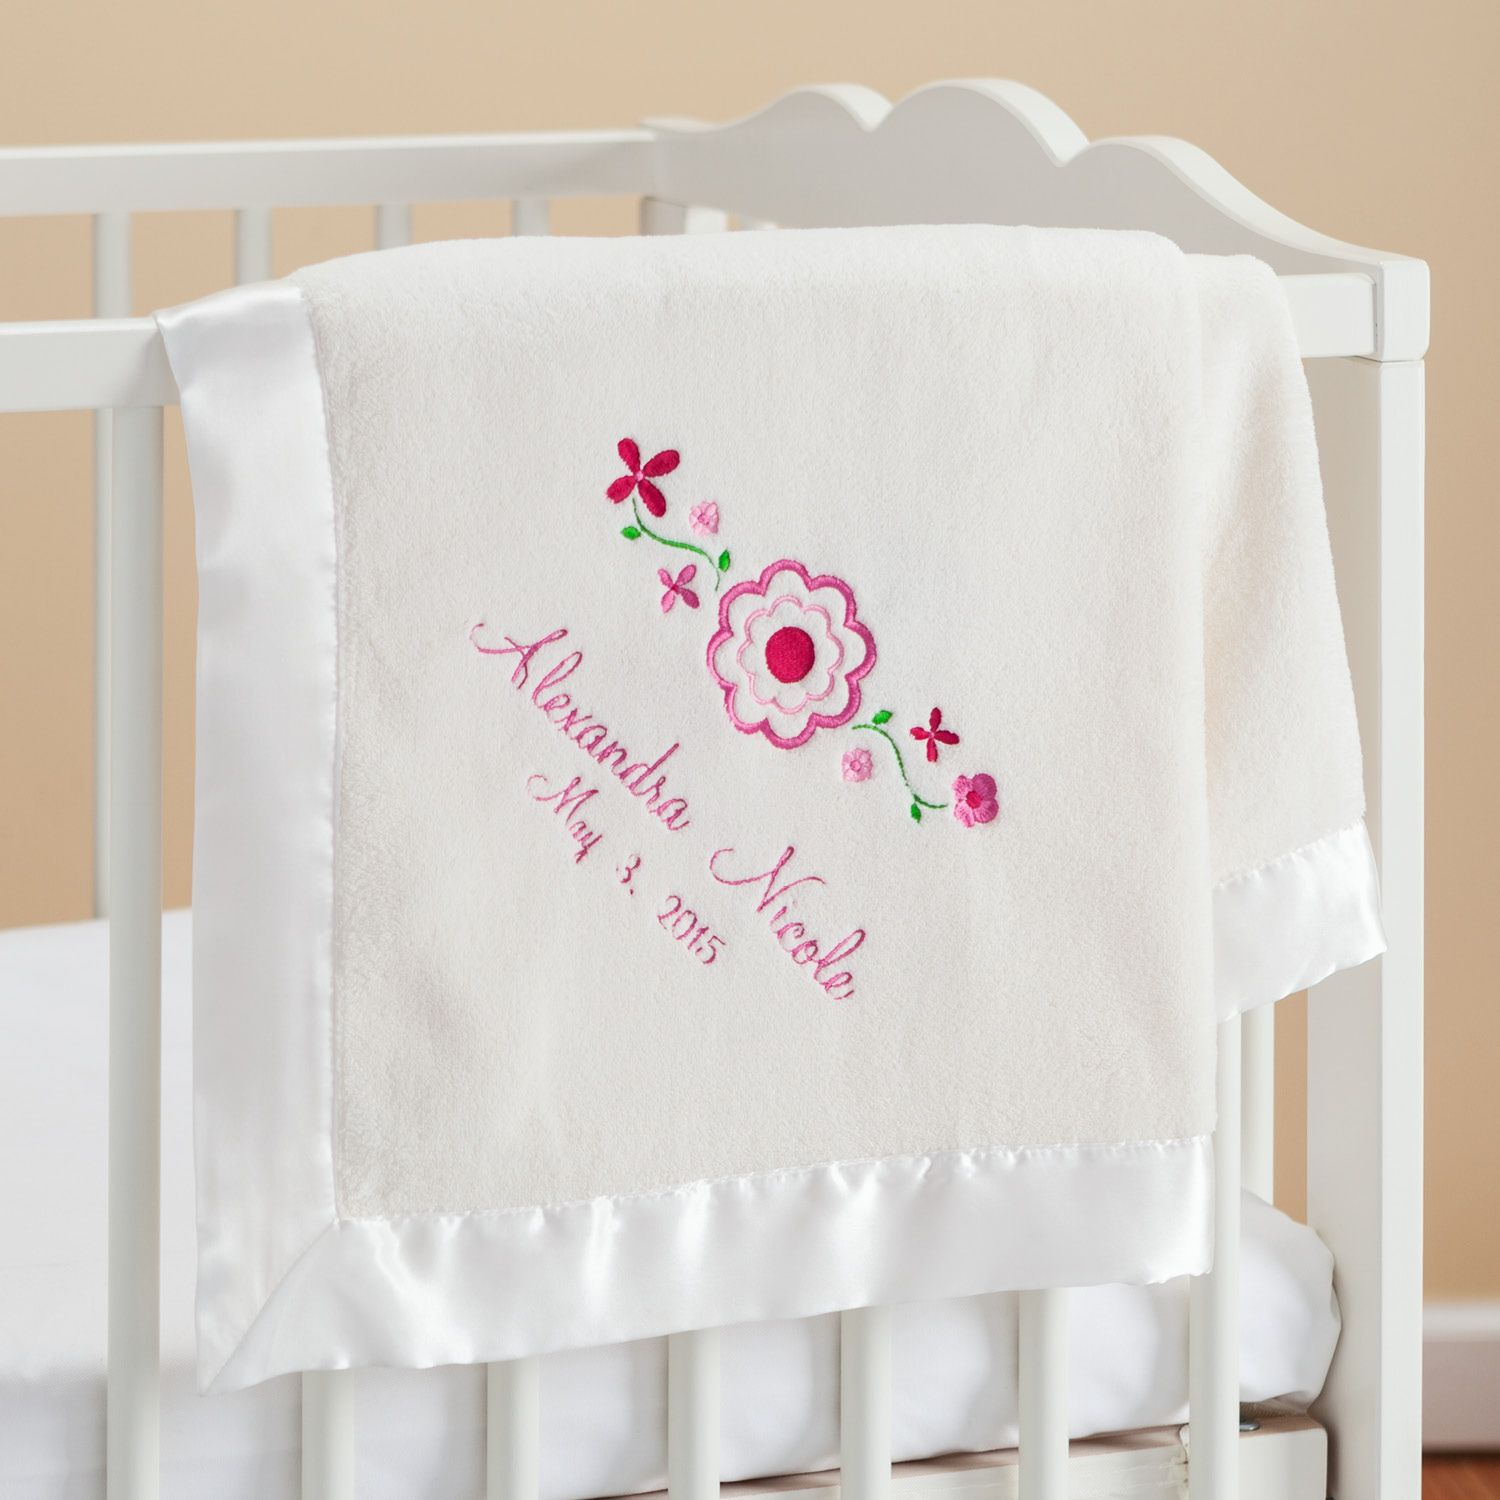 Pretty Flowers Personalized Cream Baby Blanket - Newborn - Baby | Personalized Planet